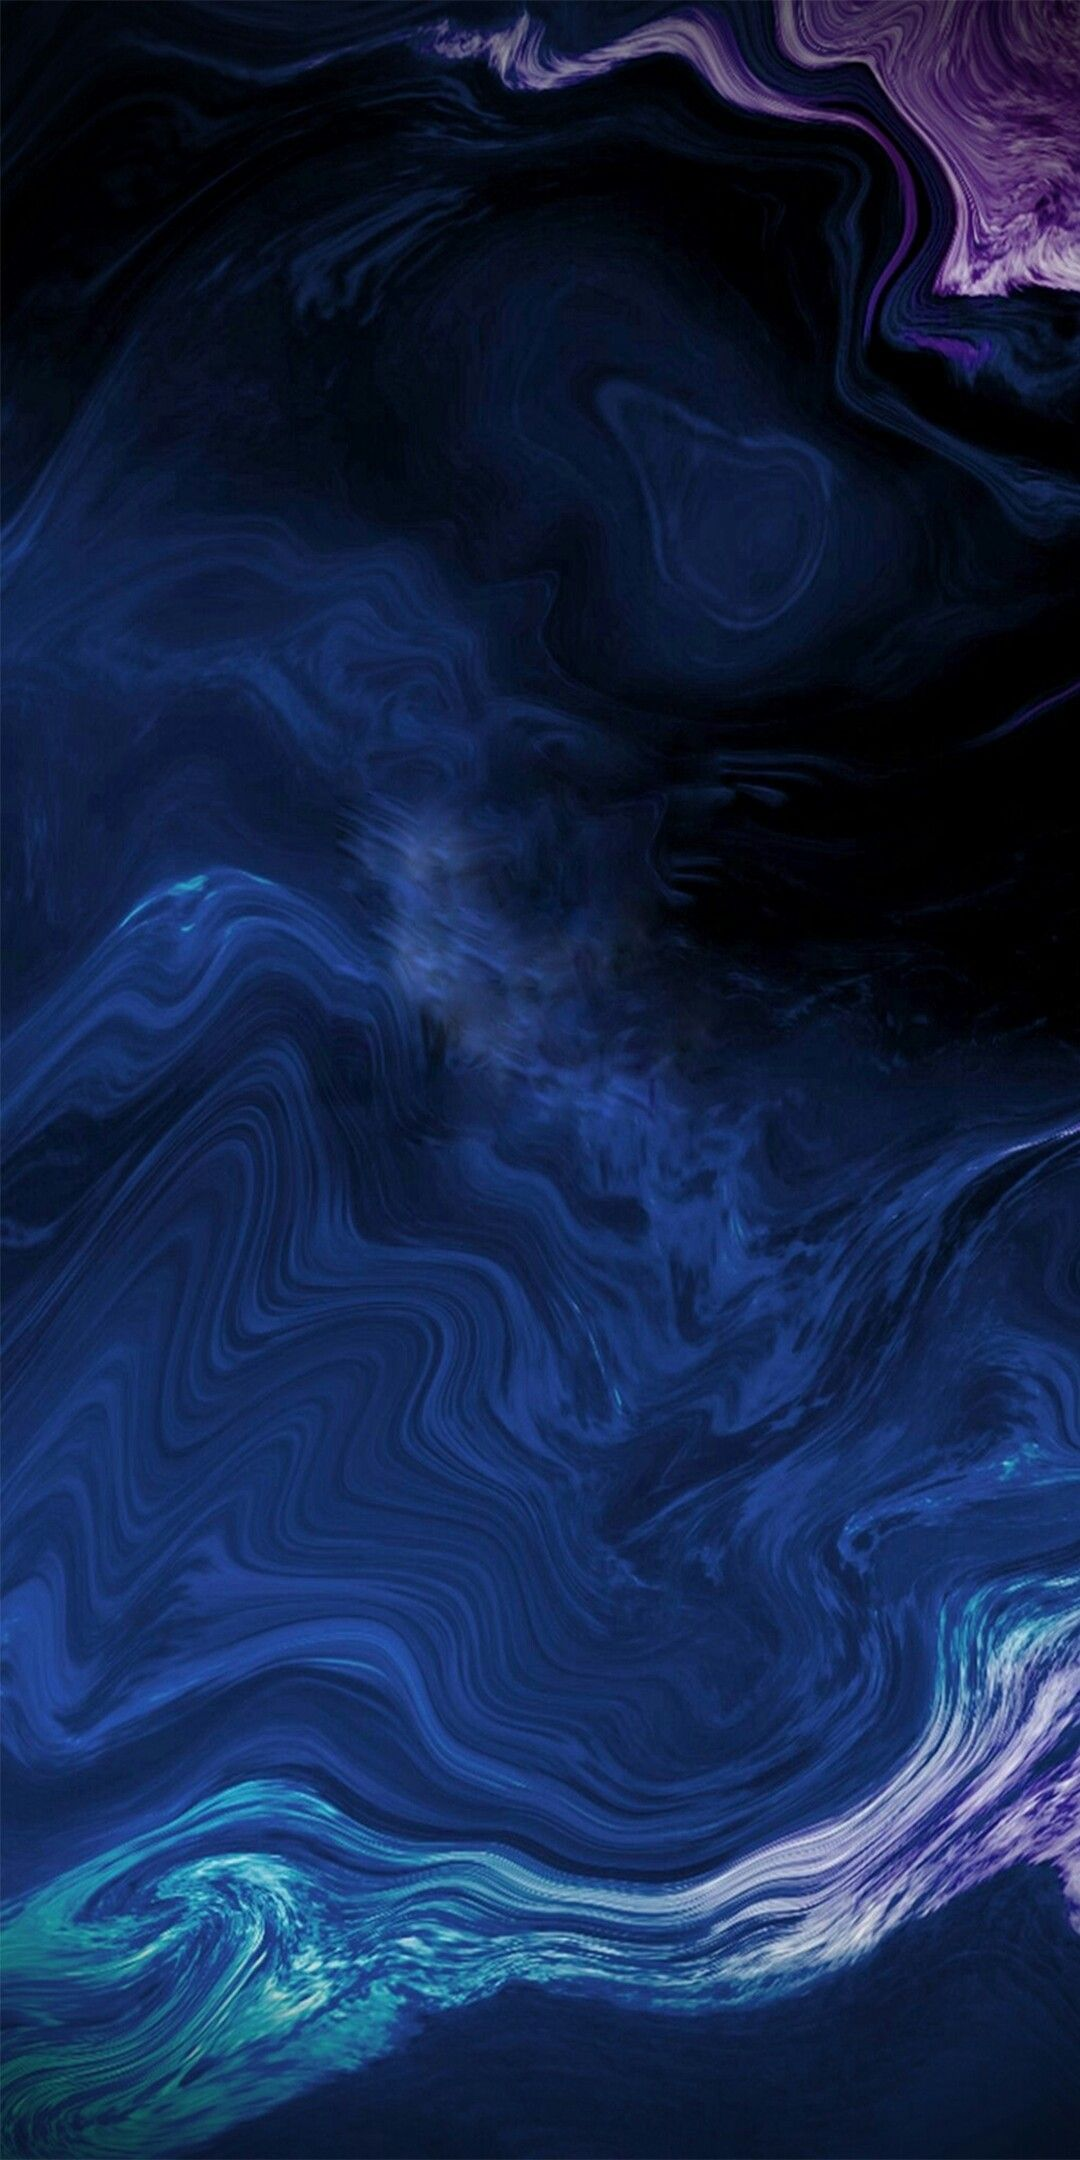 Pin By Iyan Sofyan On Abstract Amoled Liquid Gradient In 2019